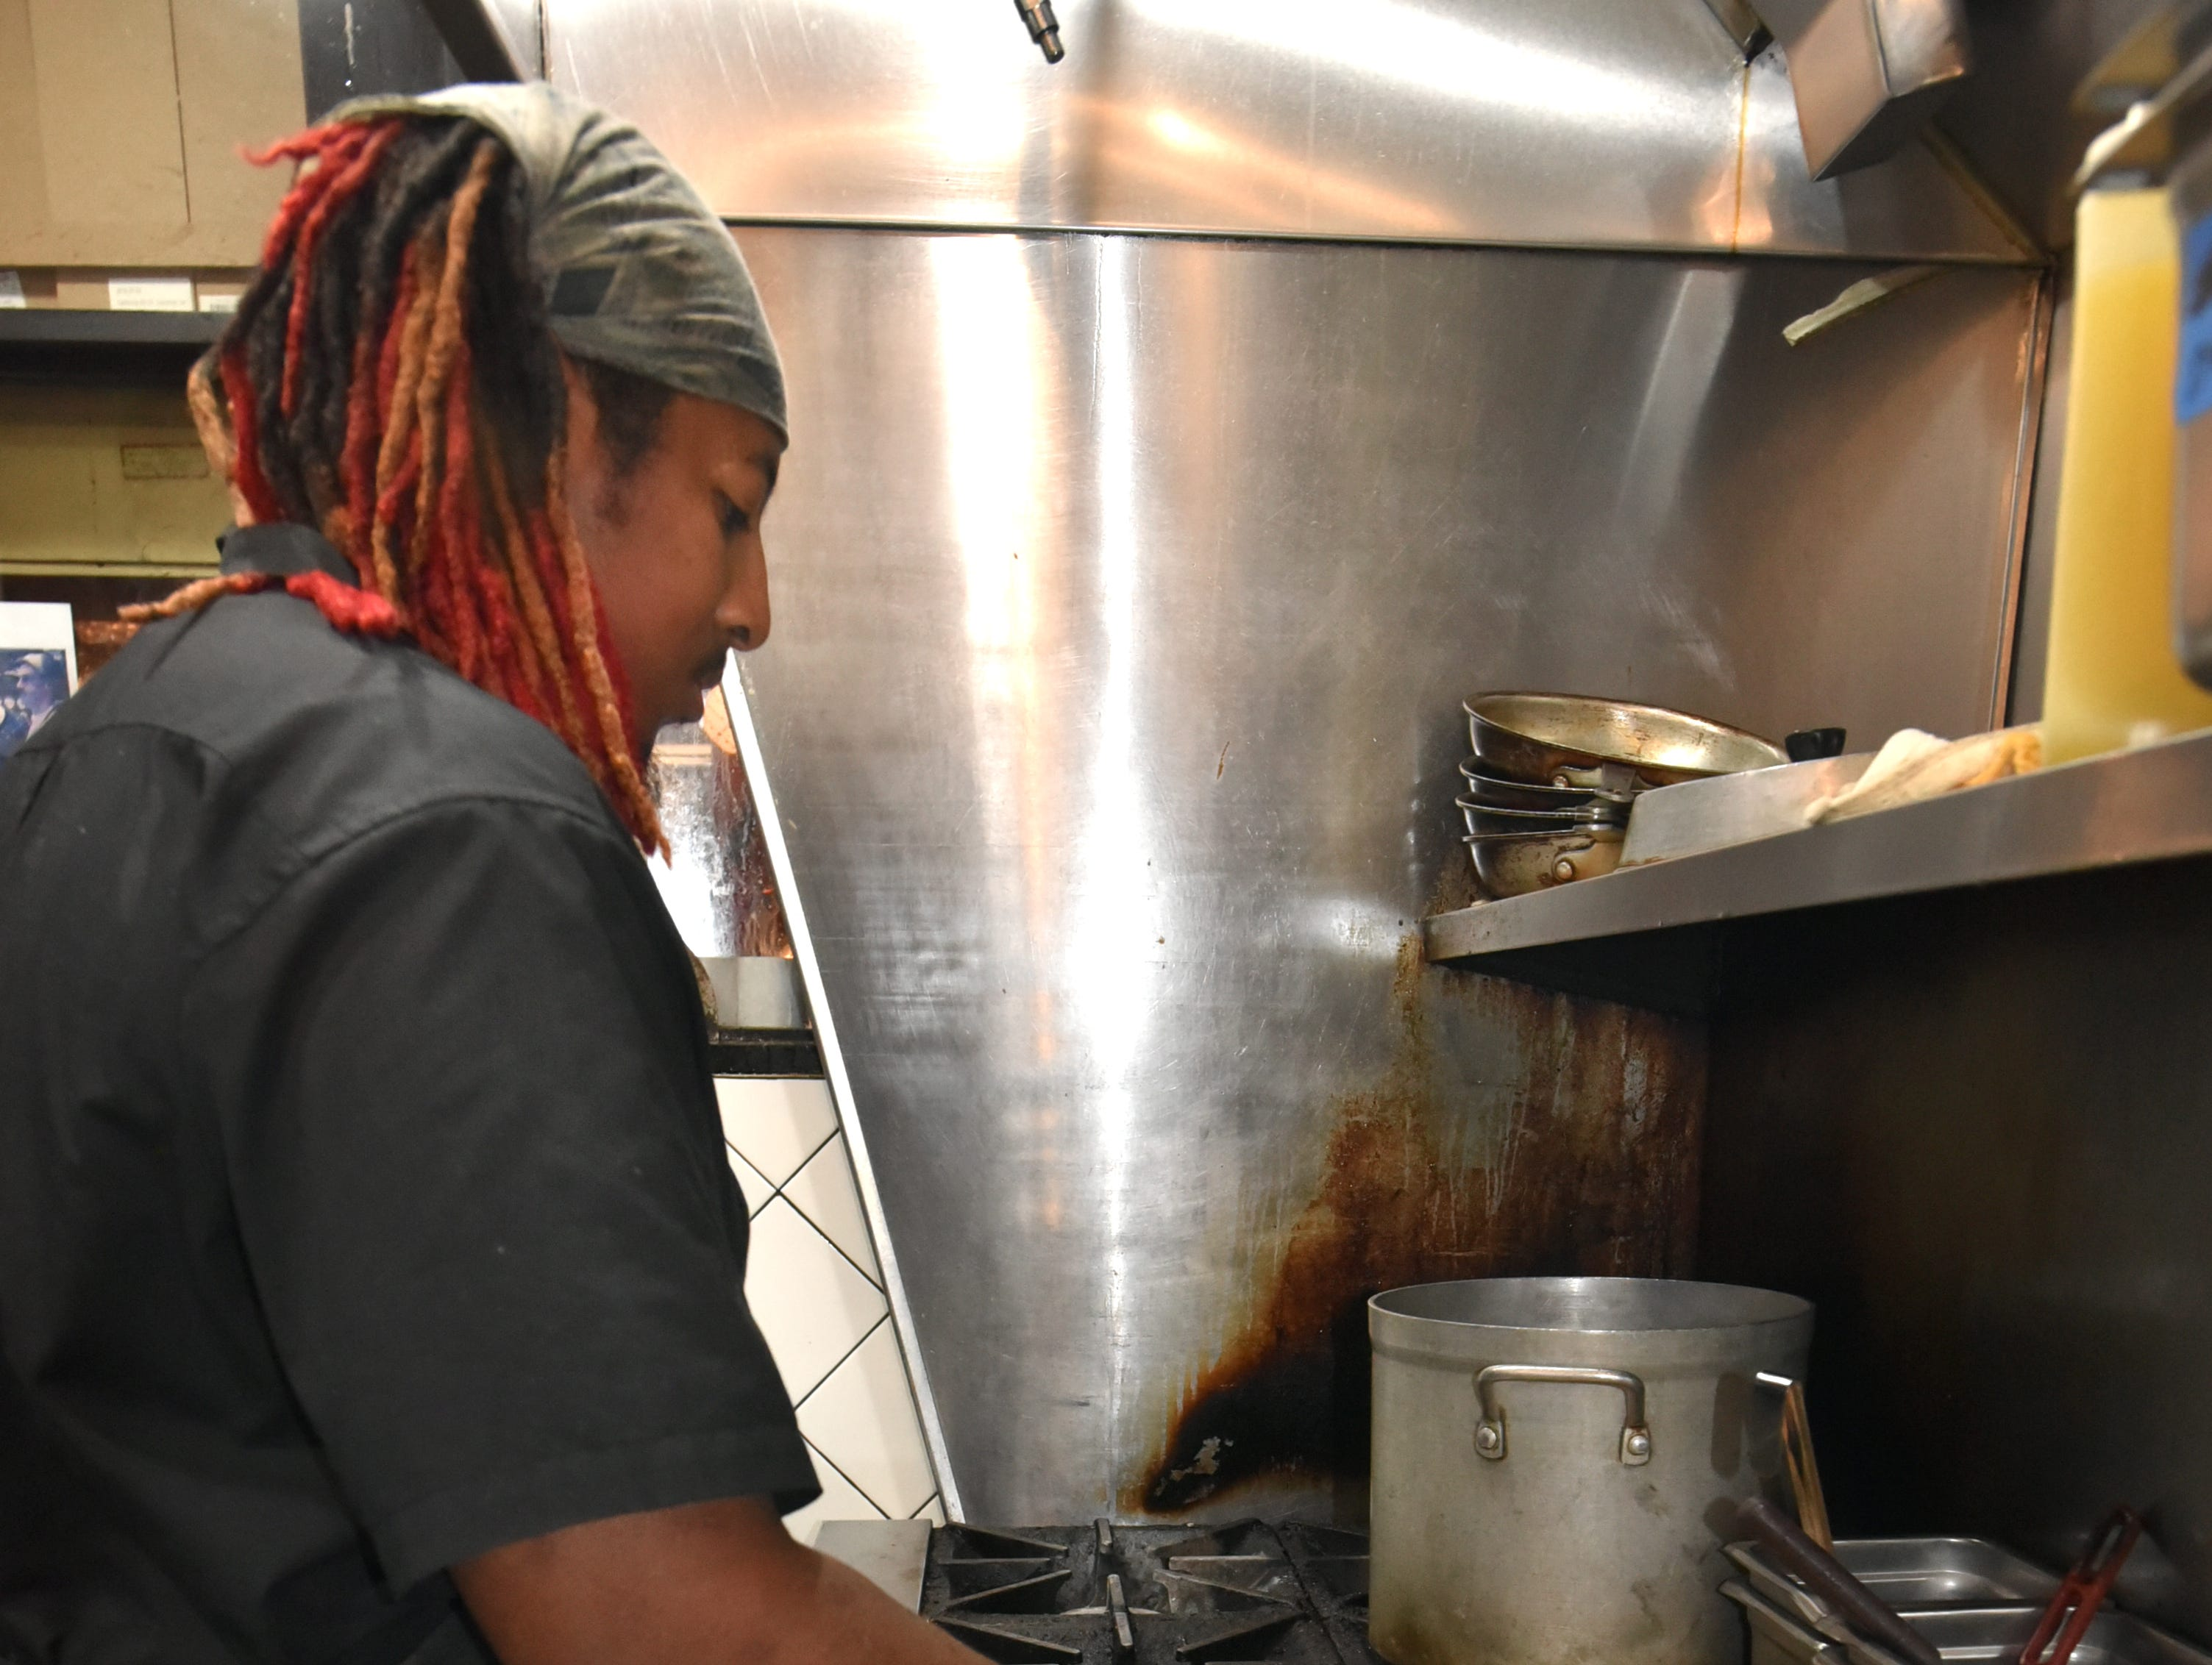 Birmingham restaurant chef Raphel Martin prepares one of his kitchen's specialties: a Cubano sandwich with ham, bacon, grill-toasted bread, pickles, and cabbage.